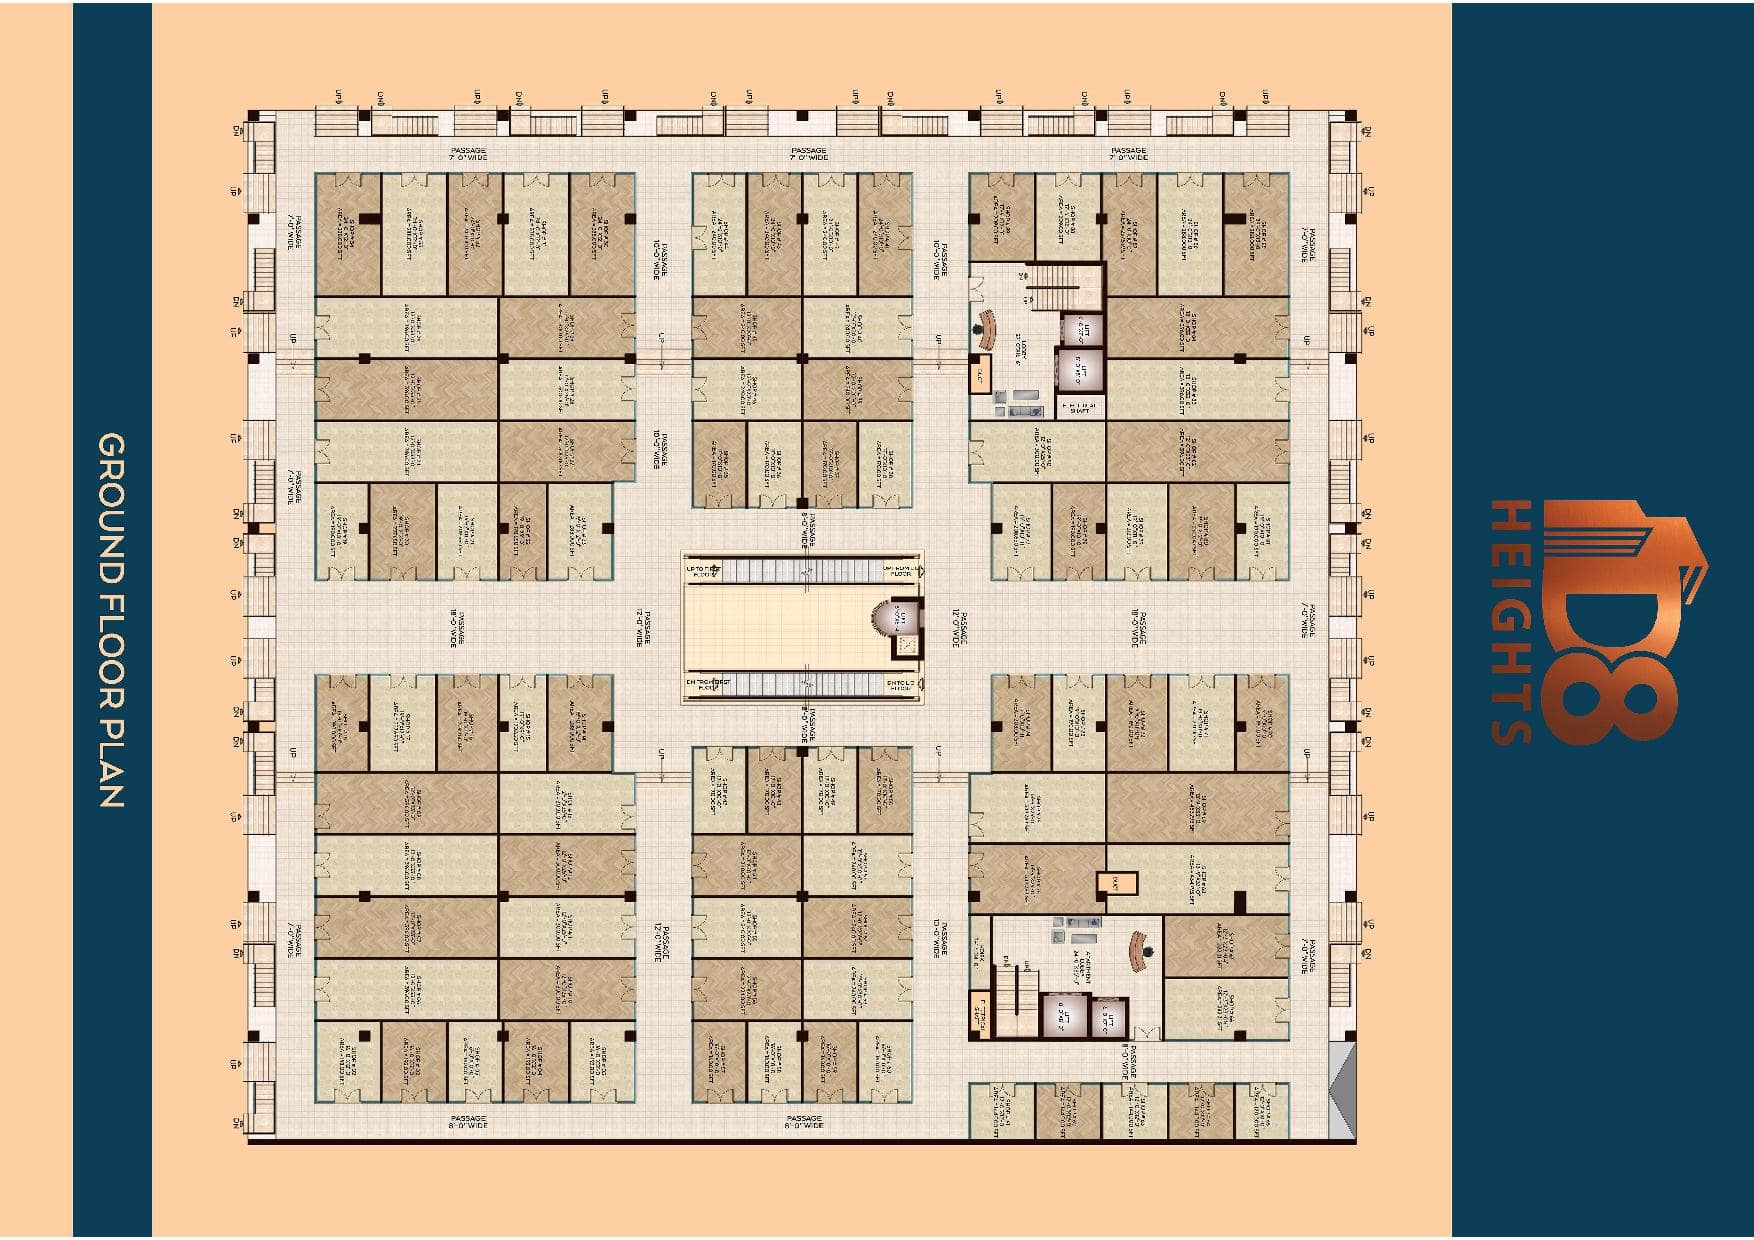 D8 Heights Ground Floor Plan